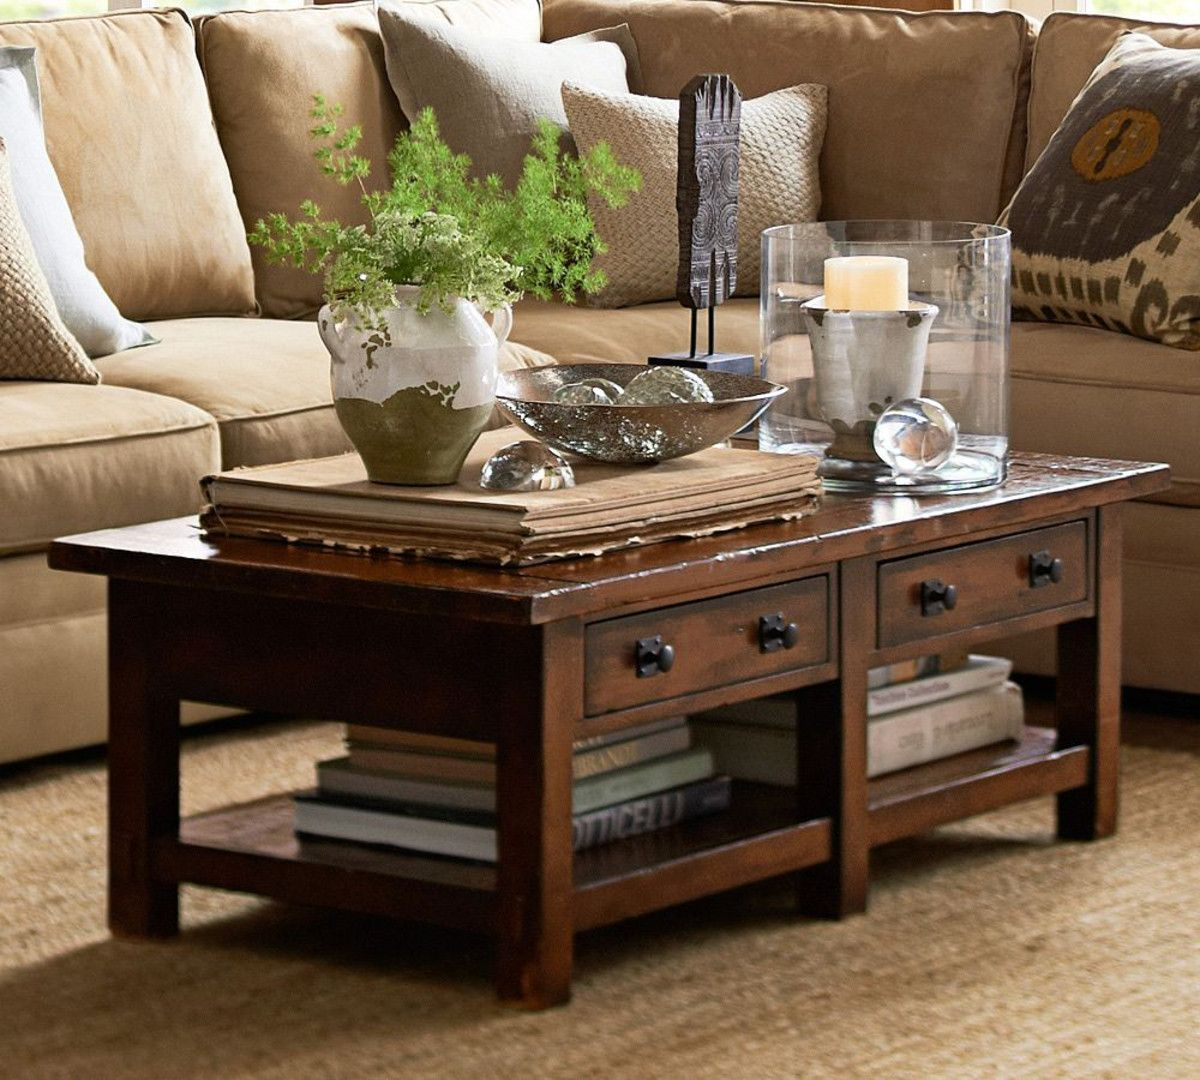 Merveilleux Benchwright Coffee Table   Rustic Mahogany Stain | Pottery Barn AU